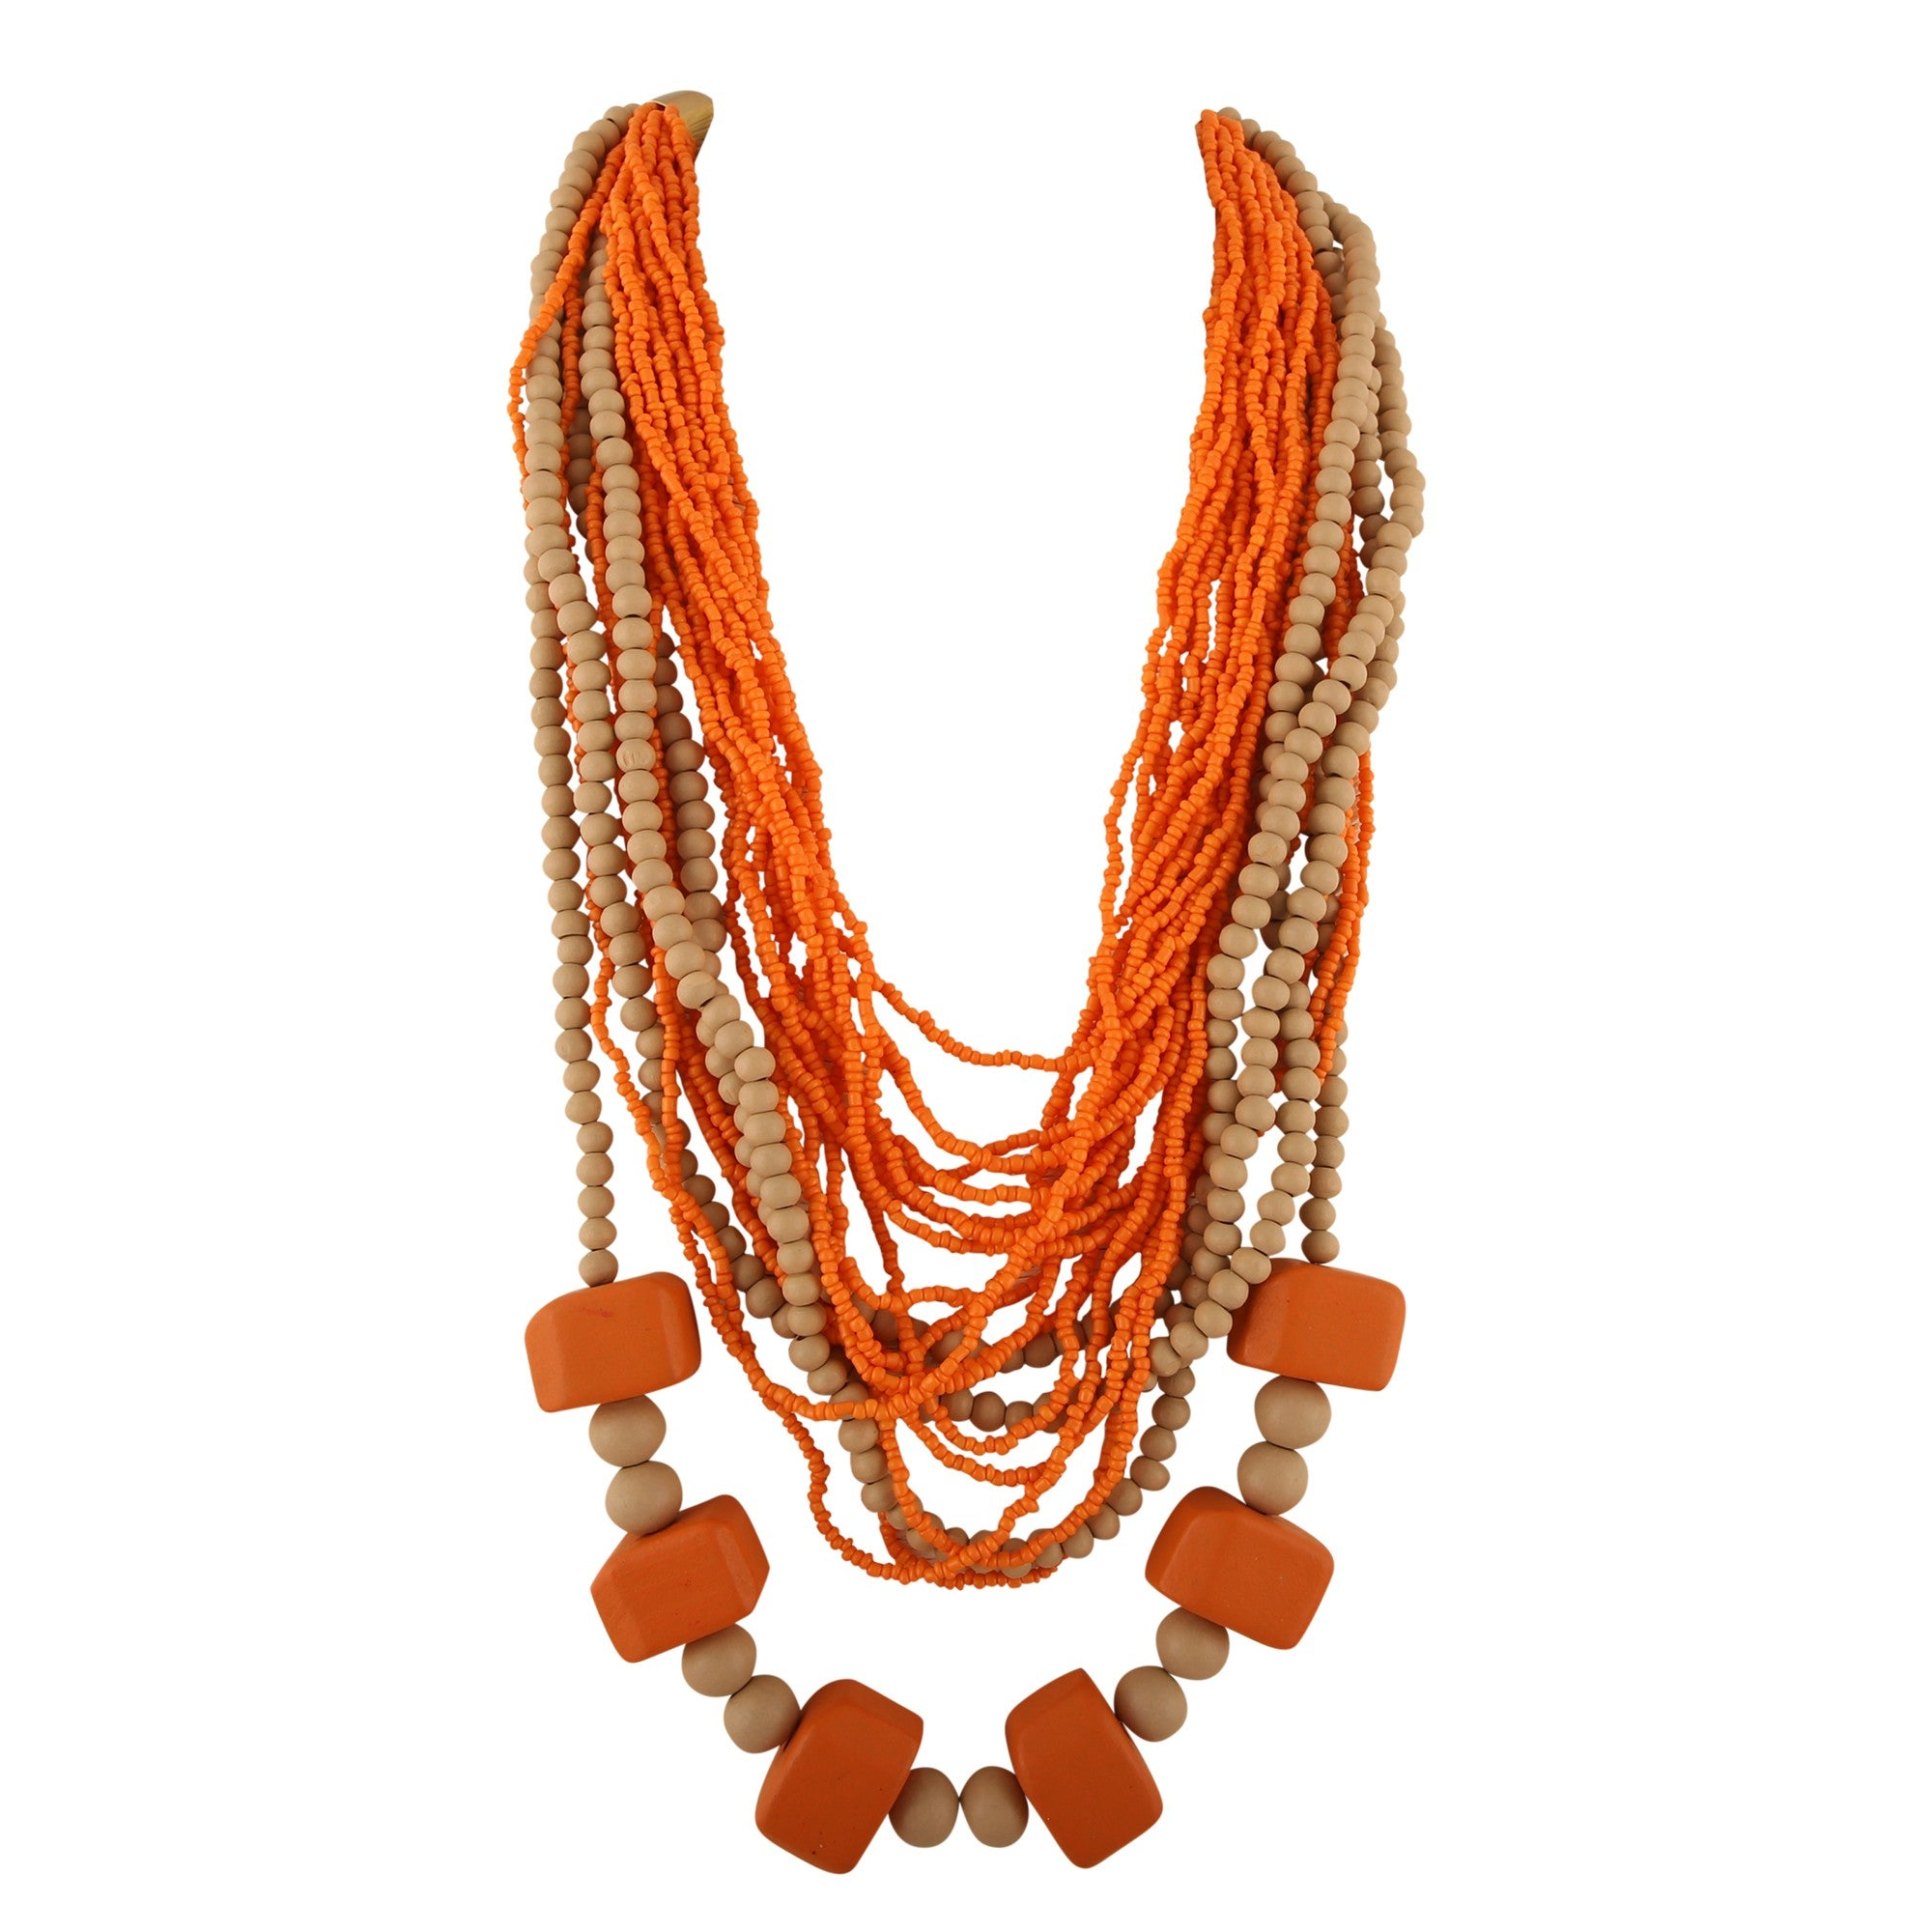 Beads of Kenya - Multi Strand Wood Necklace - Global Goddess Homewares